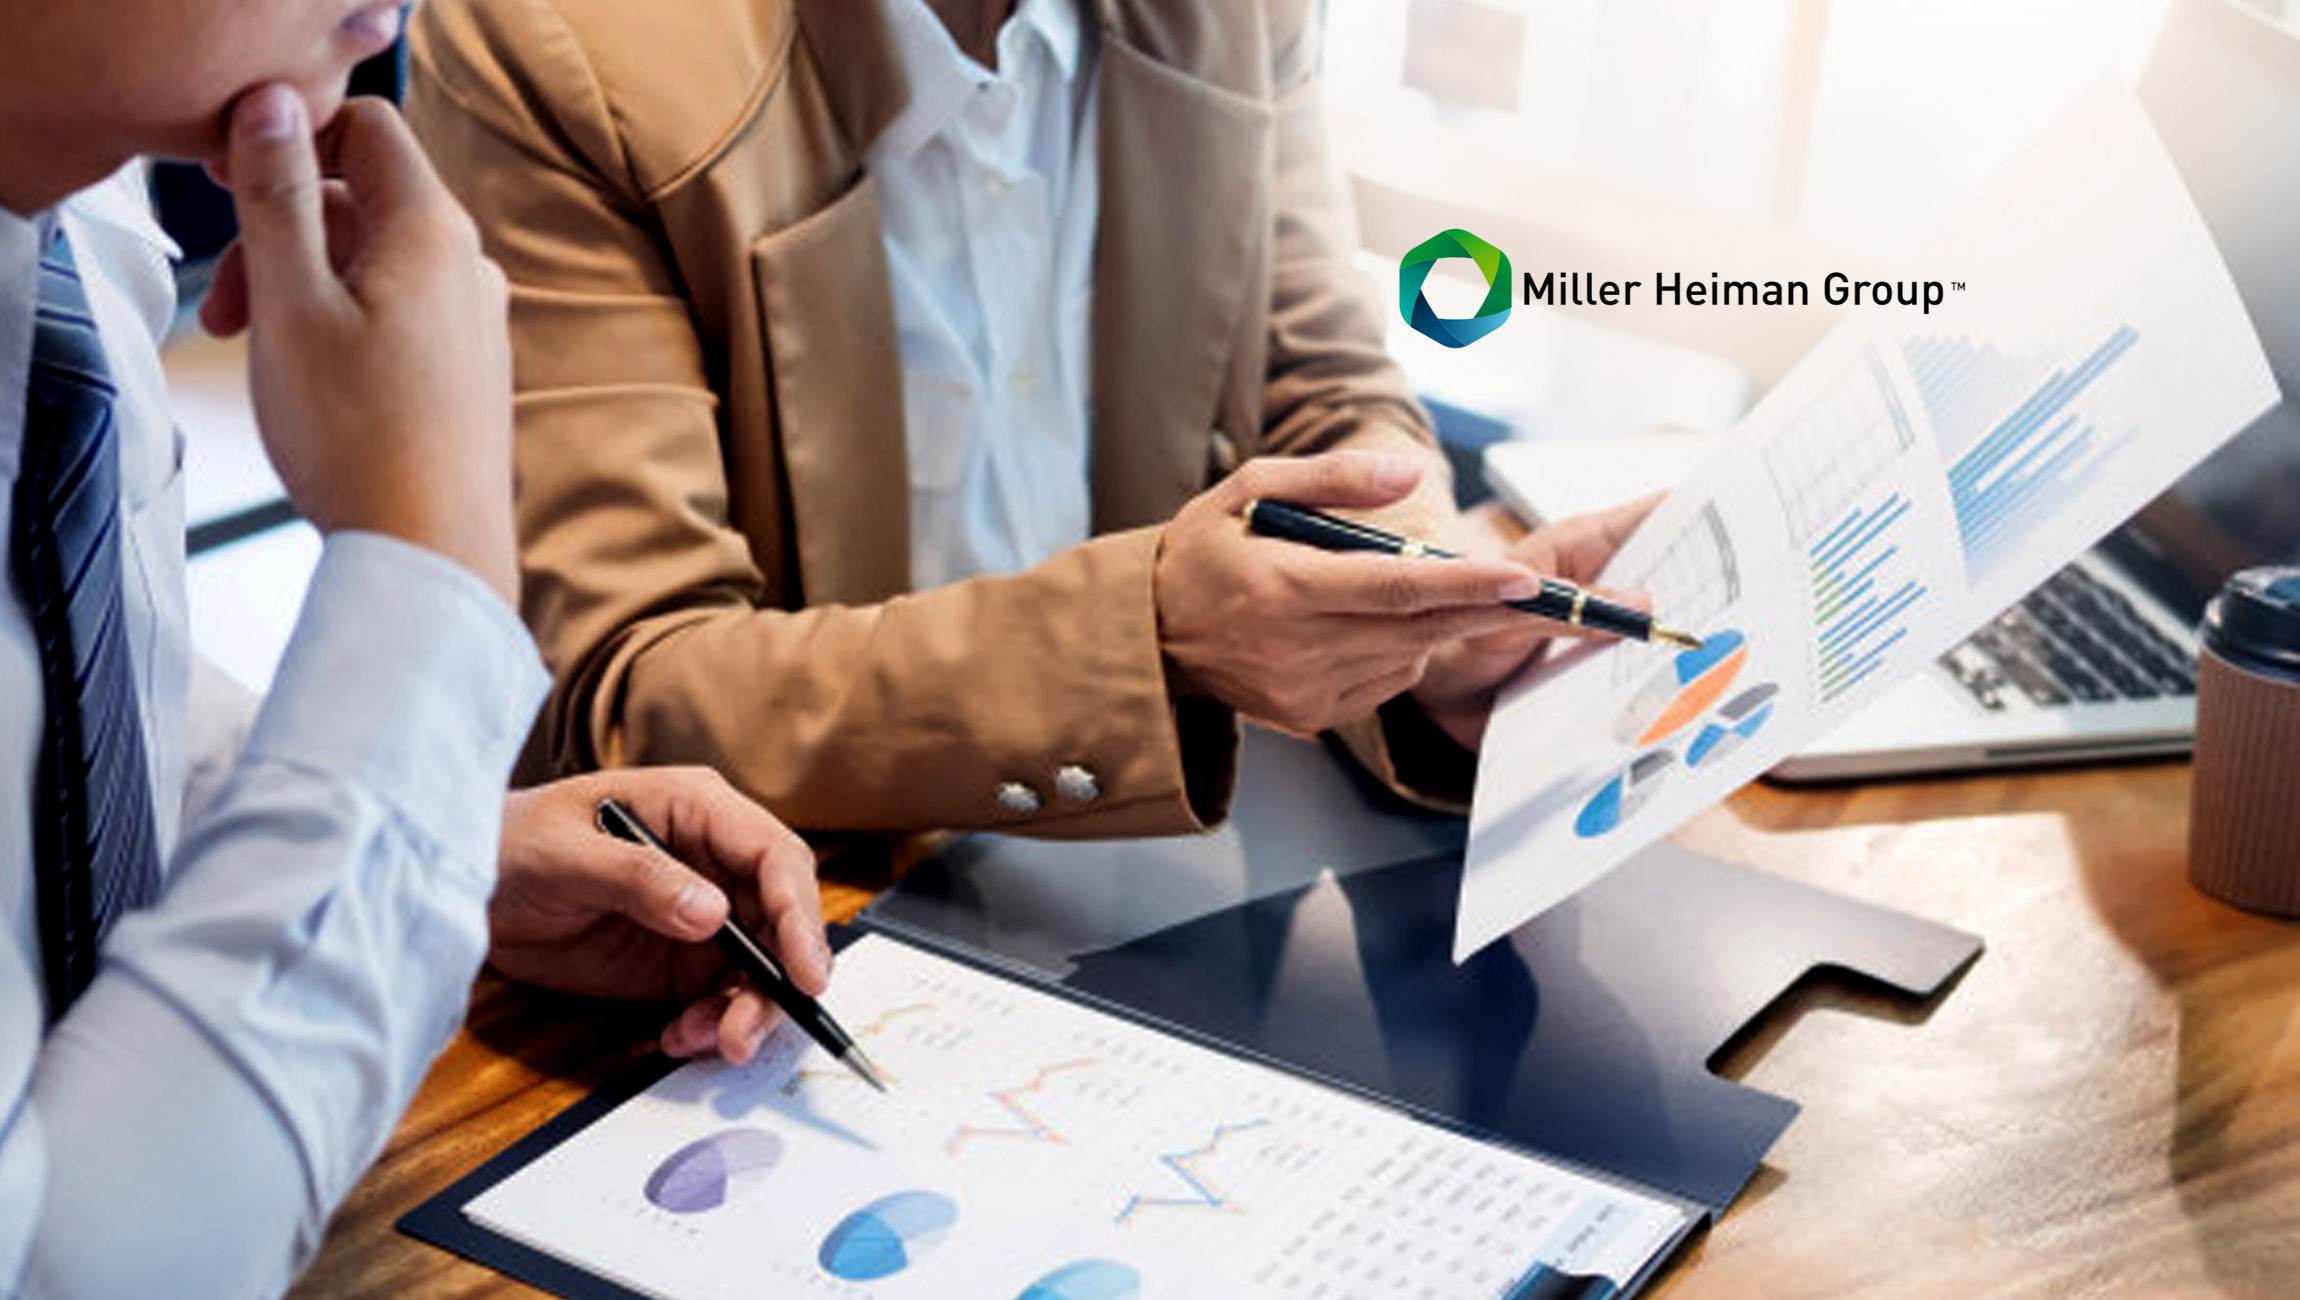 Miller Heiman Group Enhances Coverage as International Demand for Sales Performance Solutions Intensifies